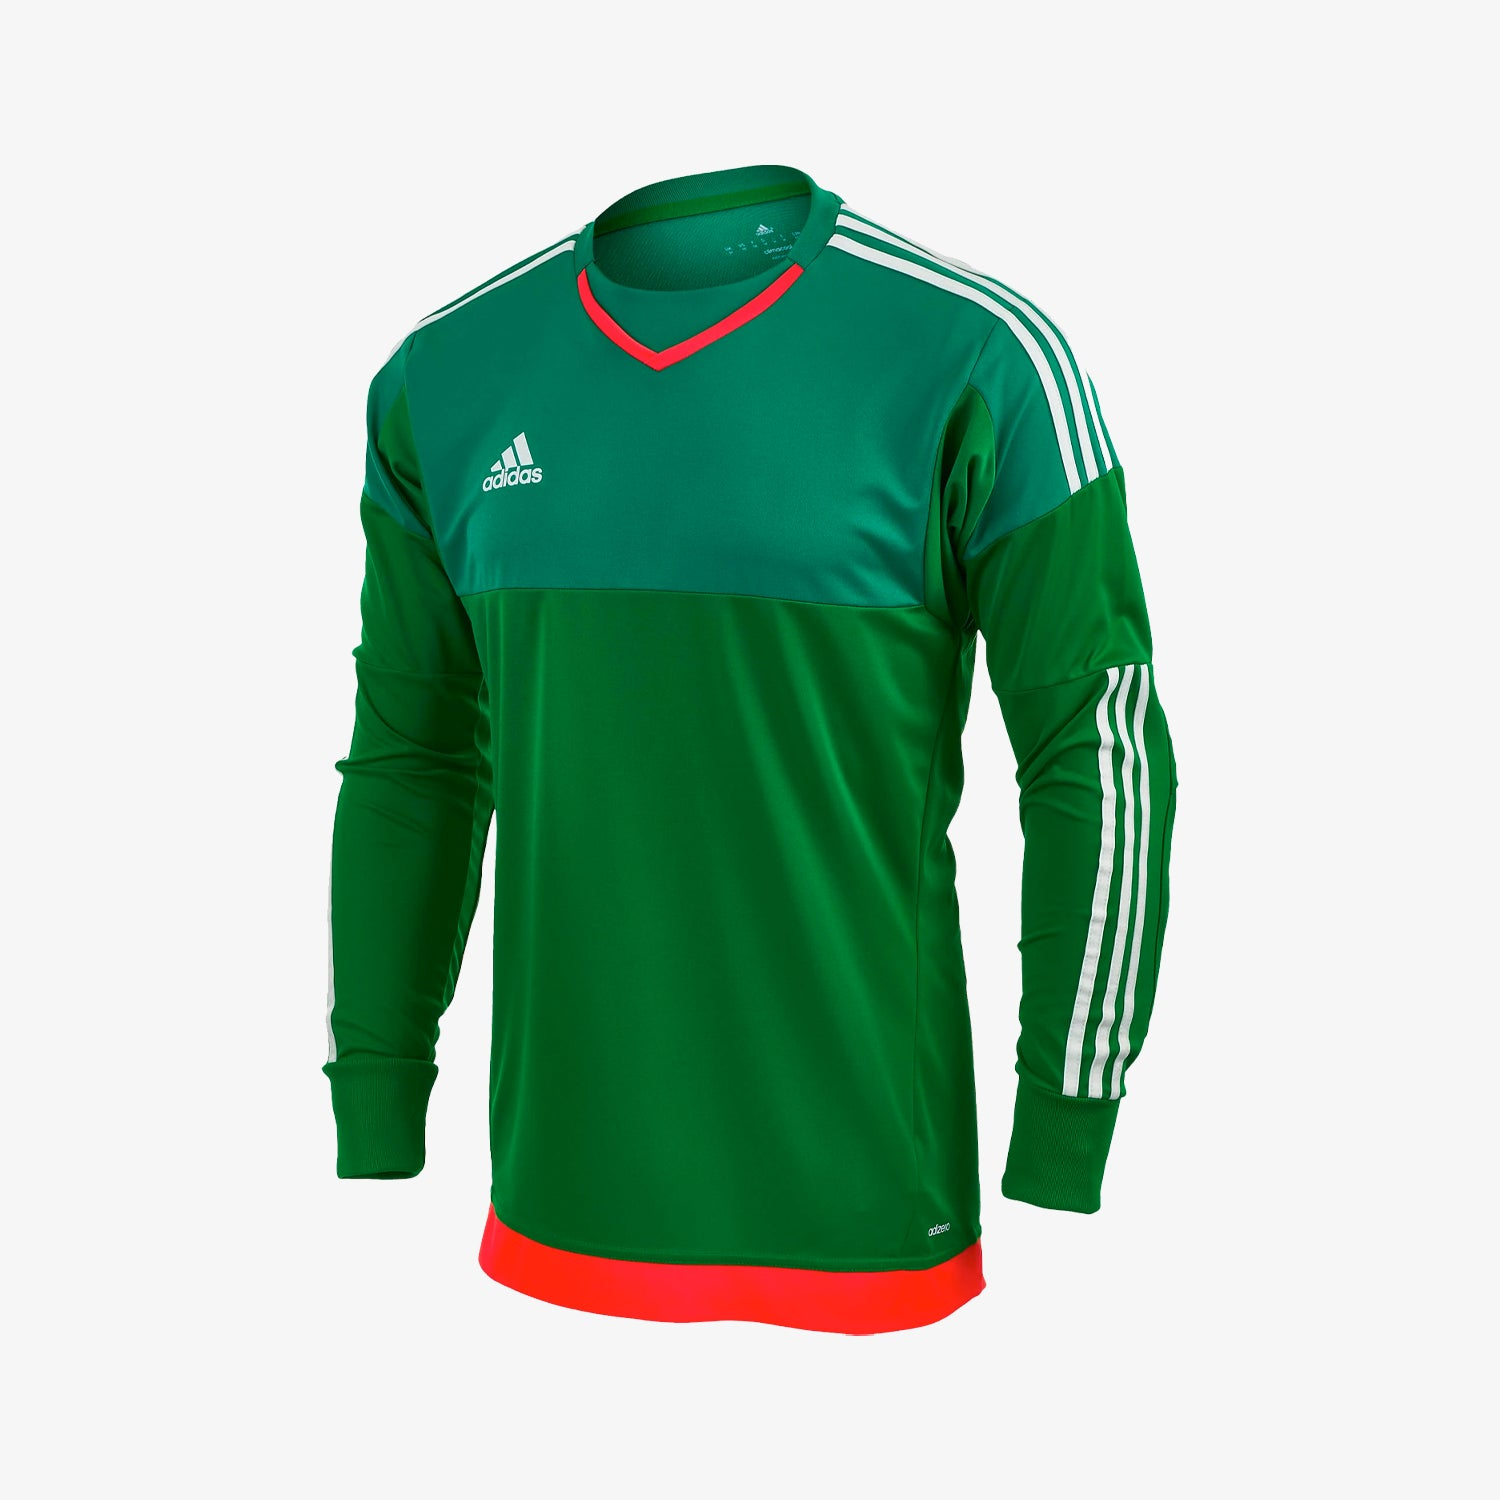 Top 15 Goalkeeper Soccer Jersey Green Men's